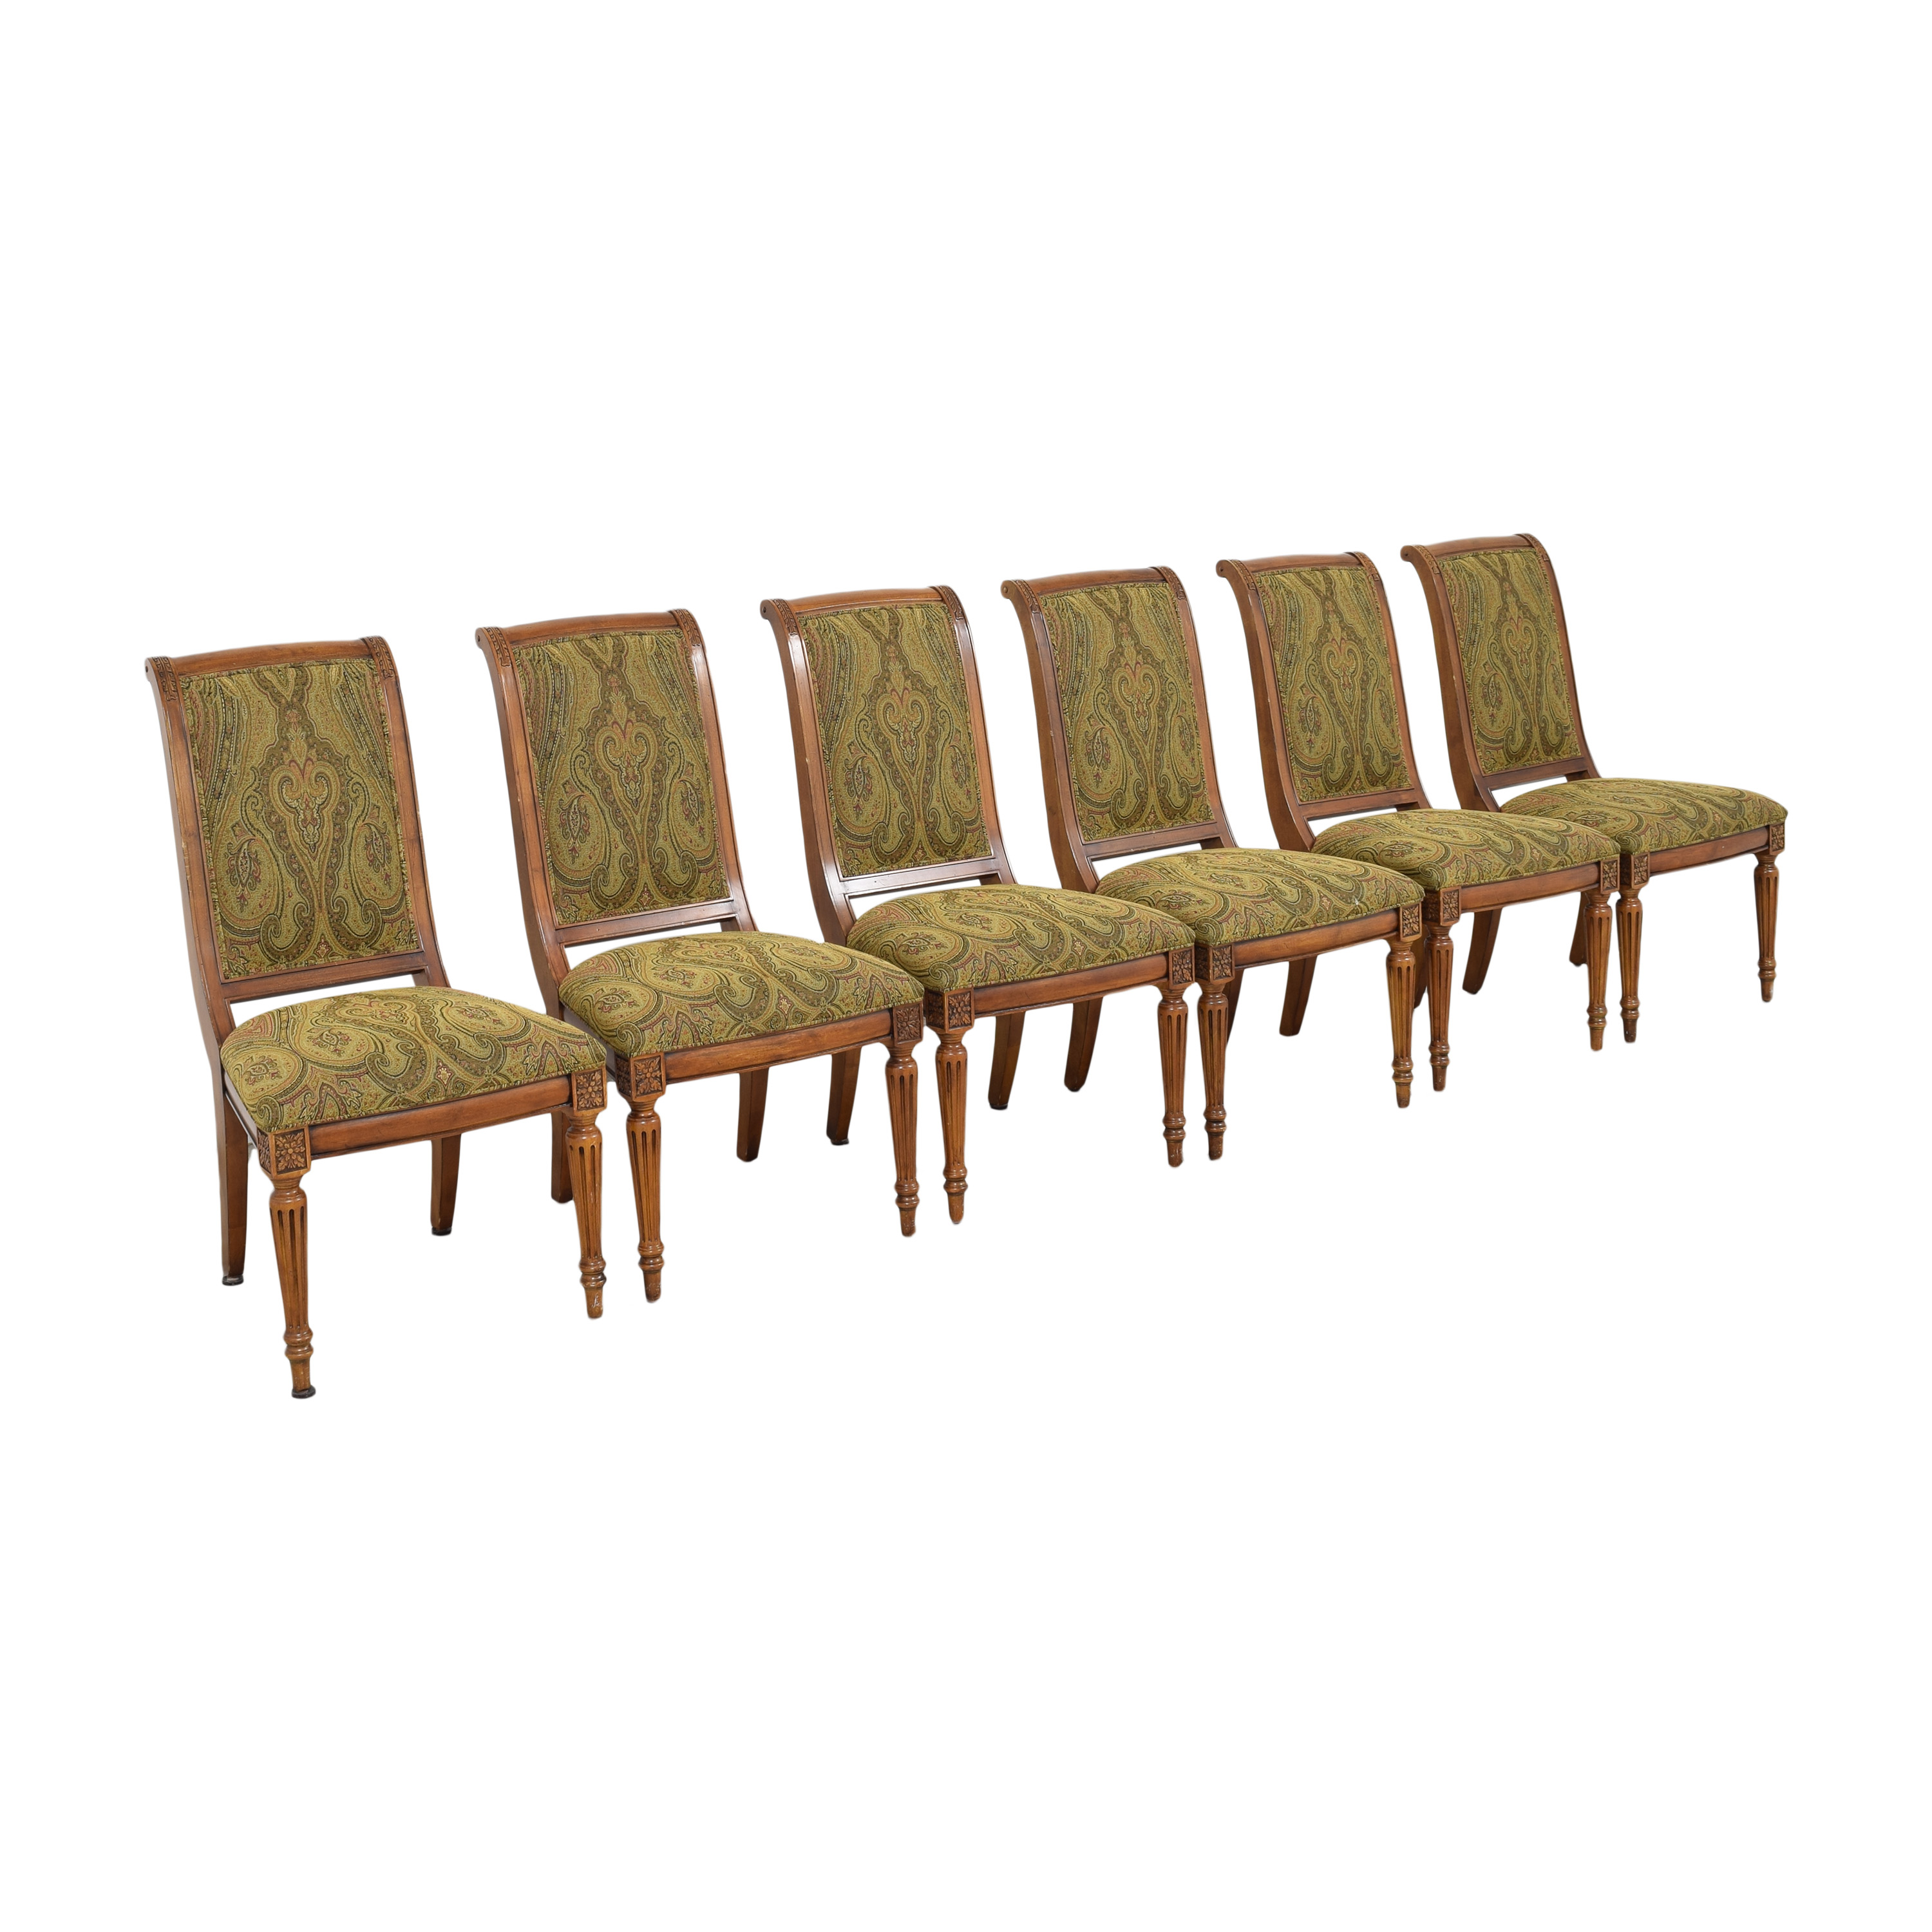 Ethan Allen Ethan Allen Adison Dining Side Chairs coupon